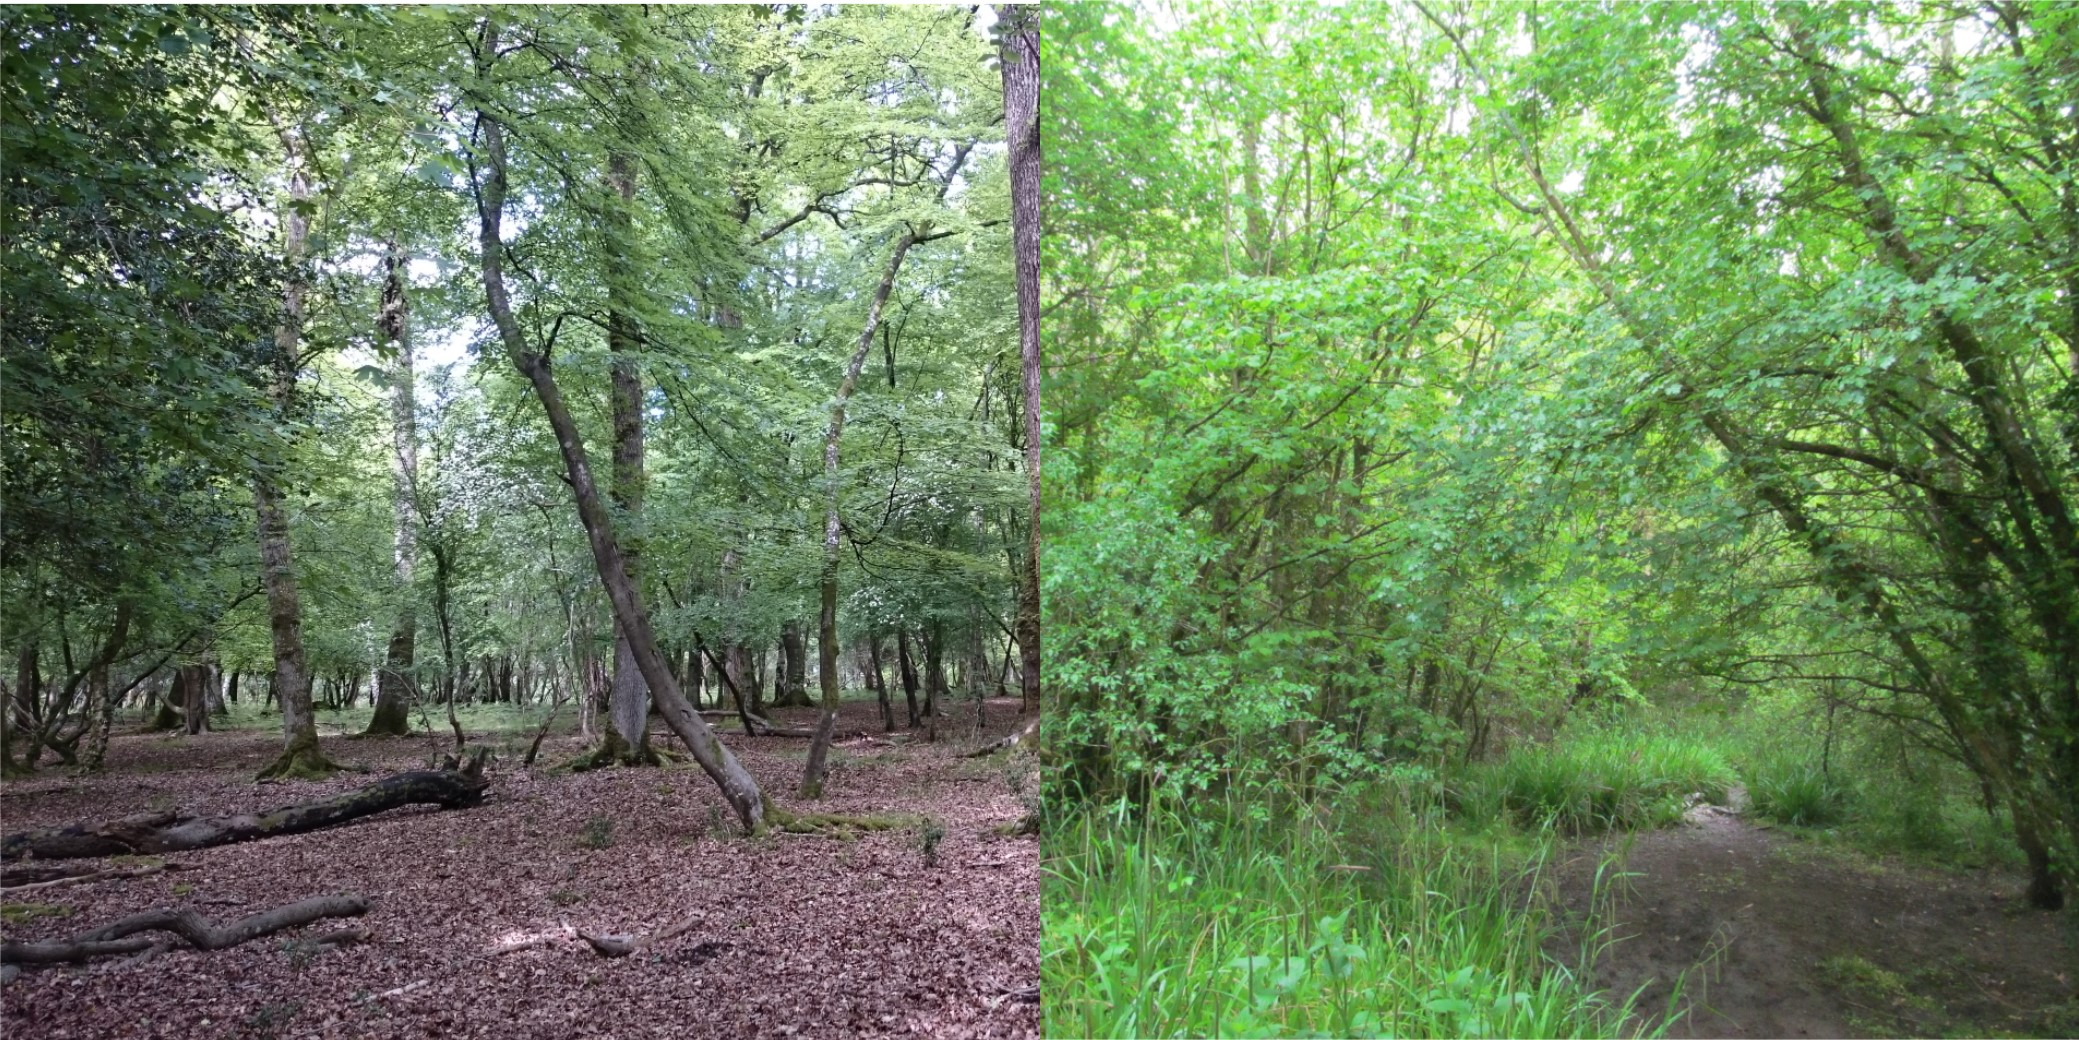 Photo of a beech and ash woodlands to show the difference in leaf litter depth